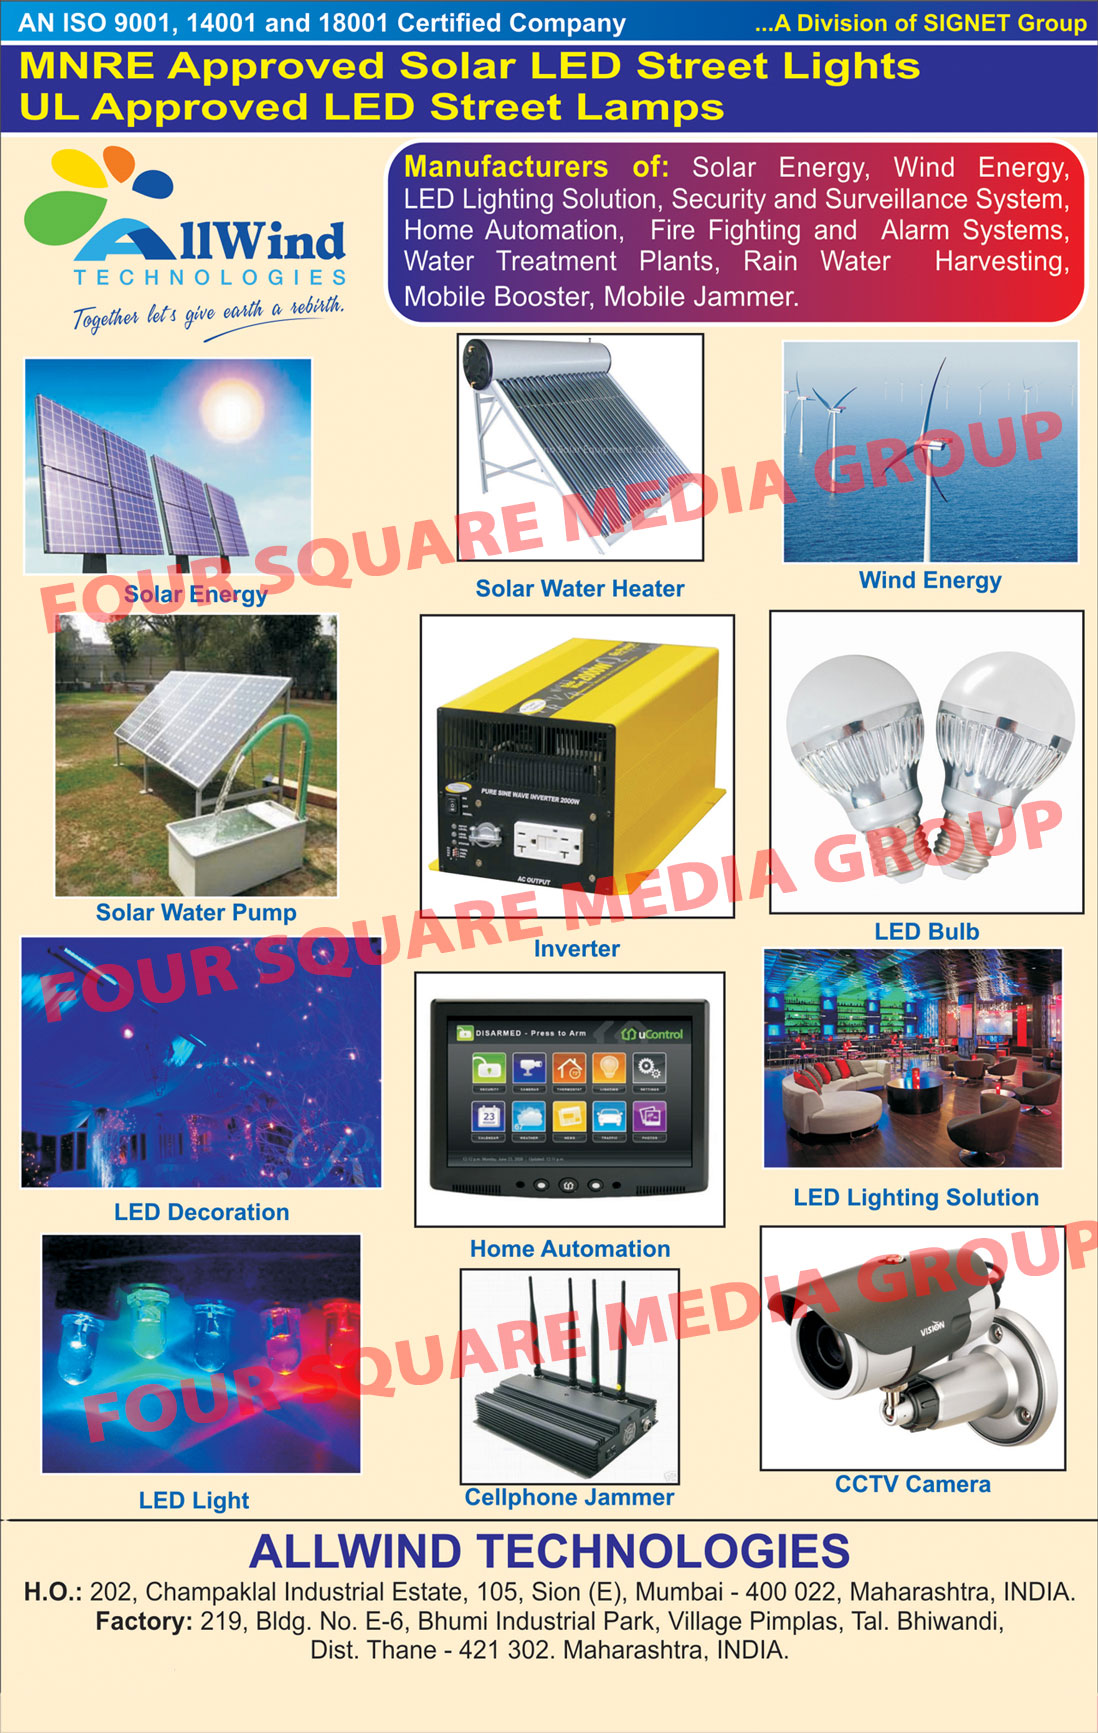 Solar Energy, Wind Energy, Led Lights, Security Surveillance, Home Automation, Fire Fighting Alarms, Water Treatment Plants,Solar Water Heaters, Solar Water Pumps, Inverter, LED Bulbs, LED Decoration, LED Light Solution, LED Lights, Cellphone Jammer, CCTV Camera, Fire Fighting and Alarm Systems, Rain Water Harvesting, Mobile Booster, LED Light Solution, Mobile Jammer, Fire Safety Products